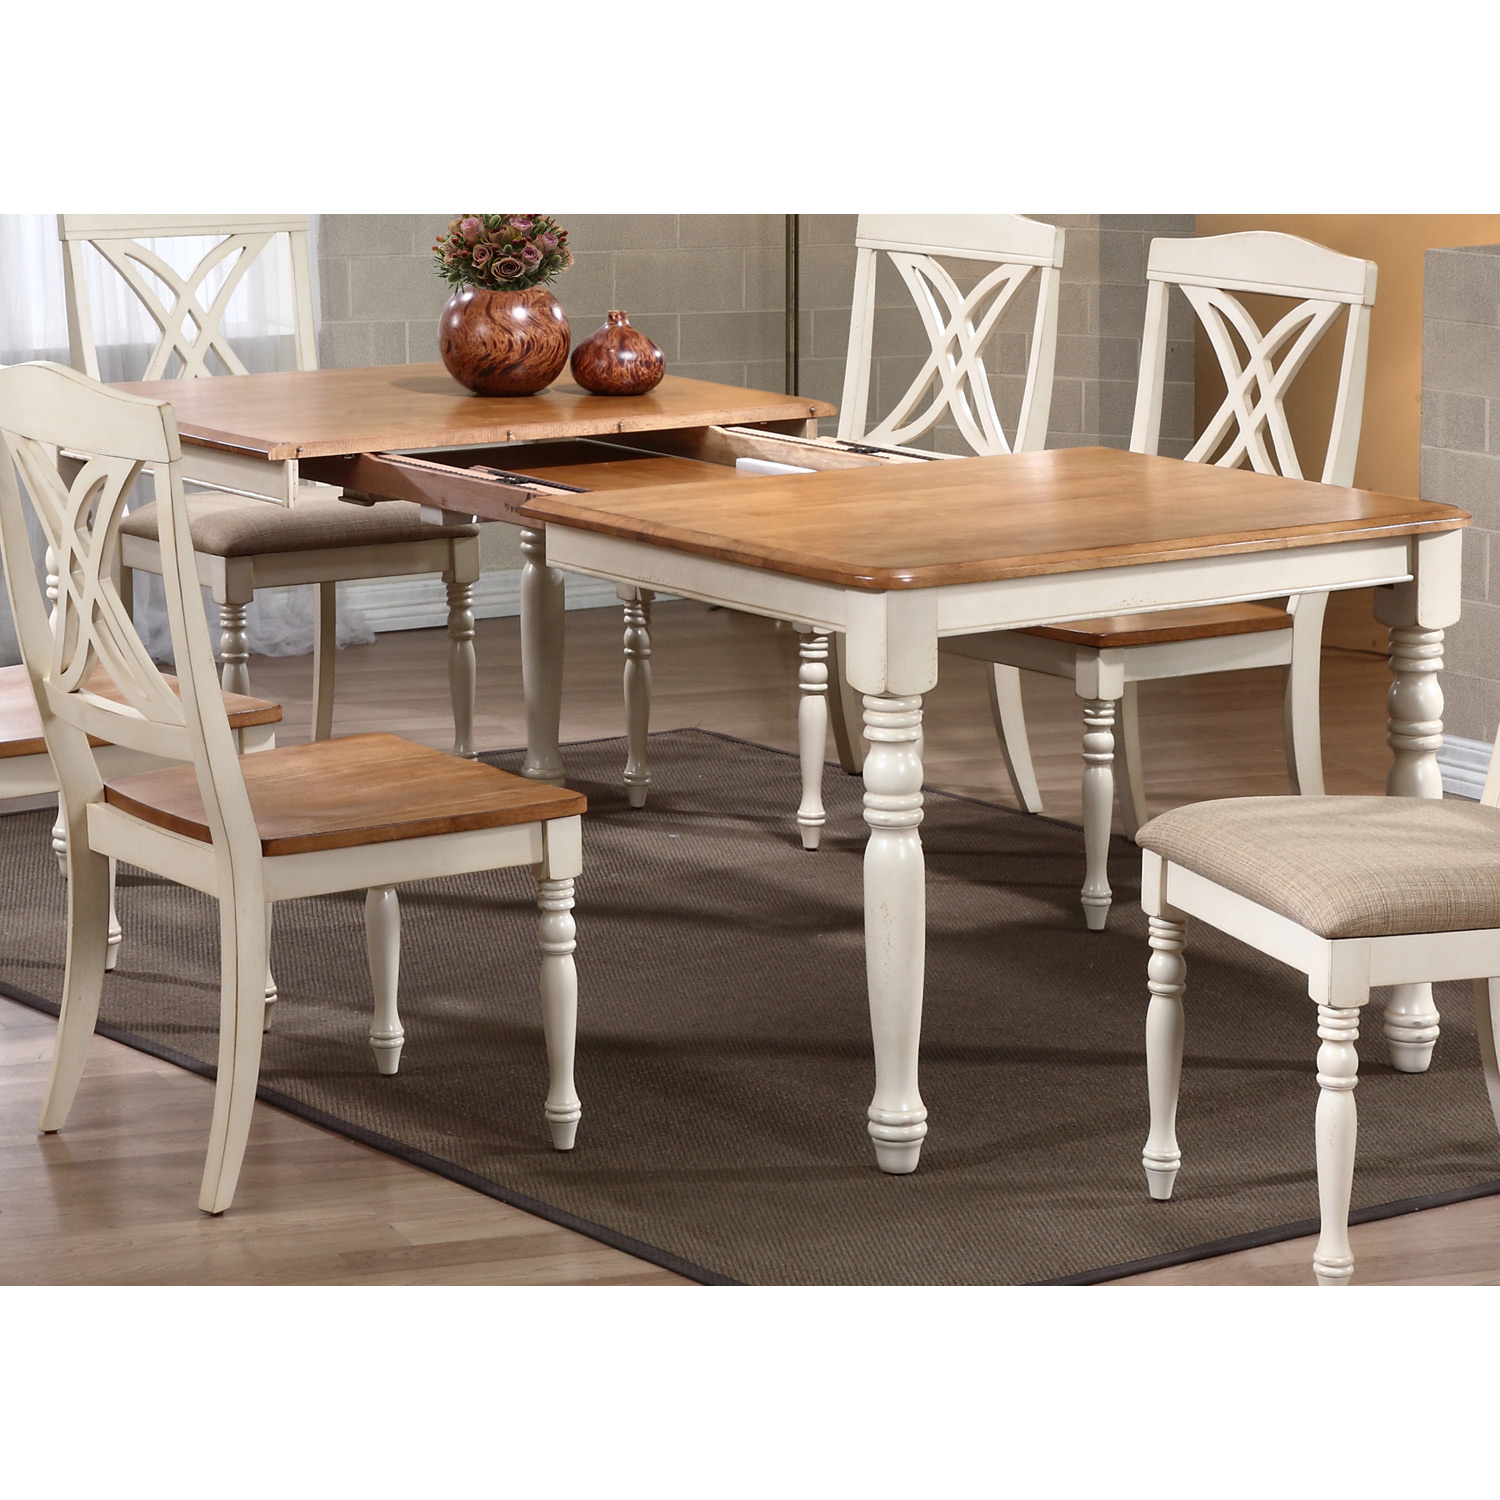 Meredith Extending Dining Table   Turned Legs, Biscotti U0026 Caramel    ICON RT  ...